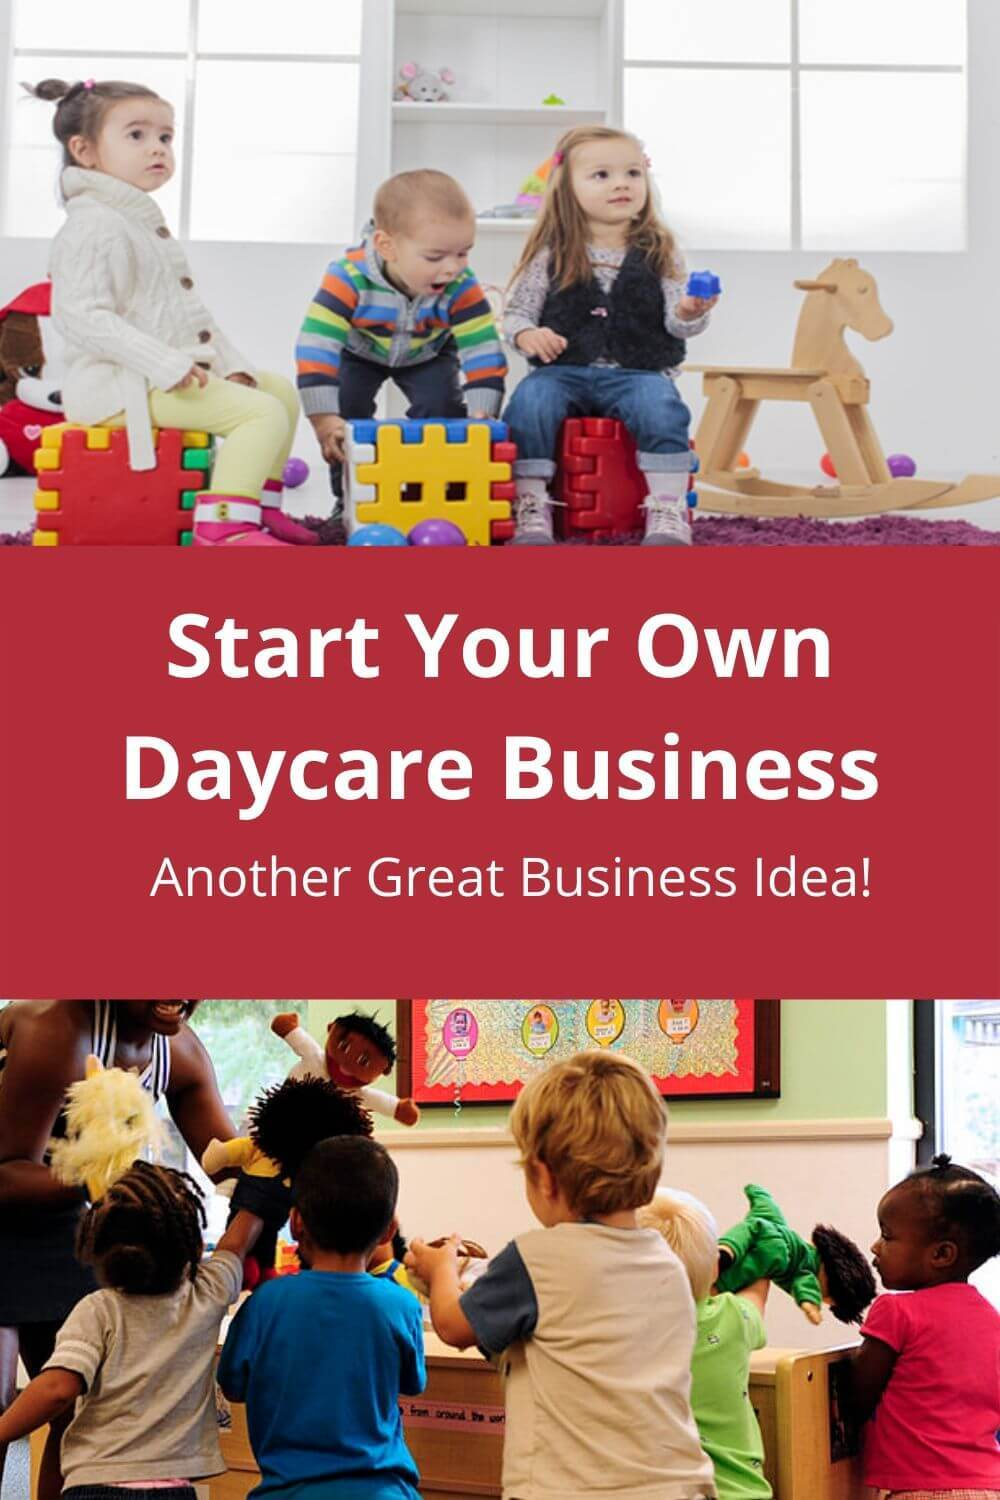 Start Your Own Daycare Business